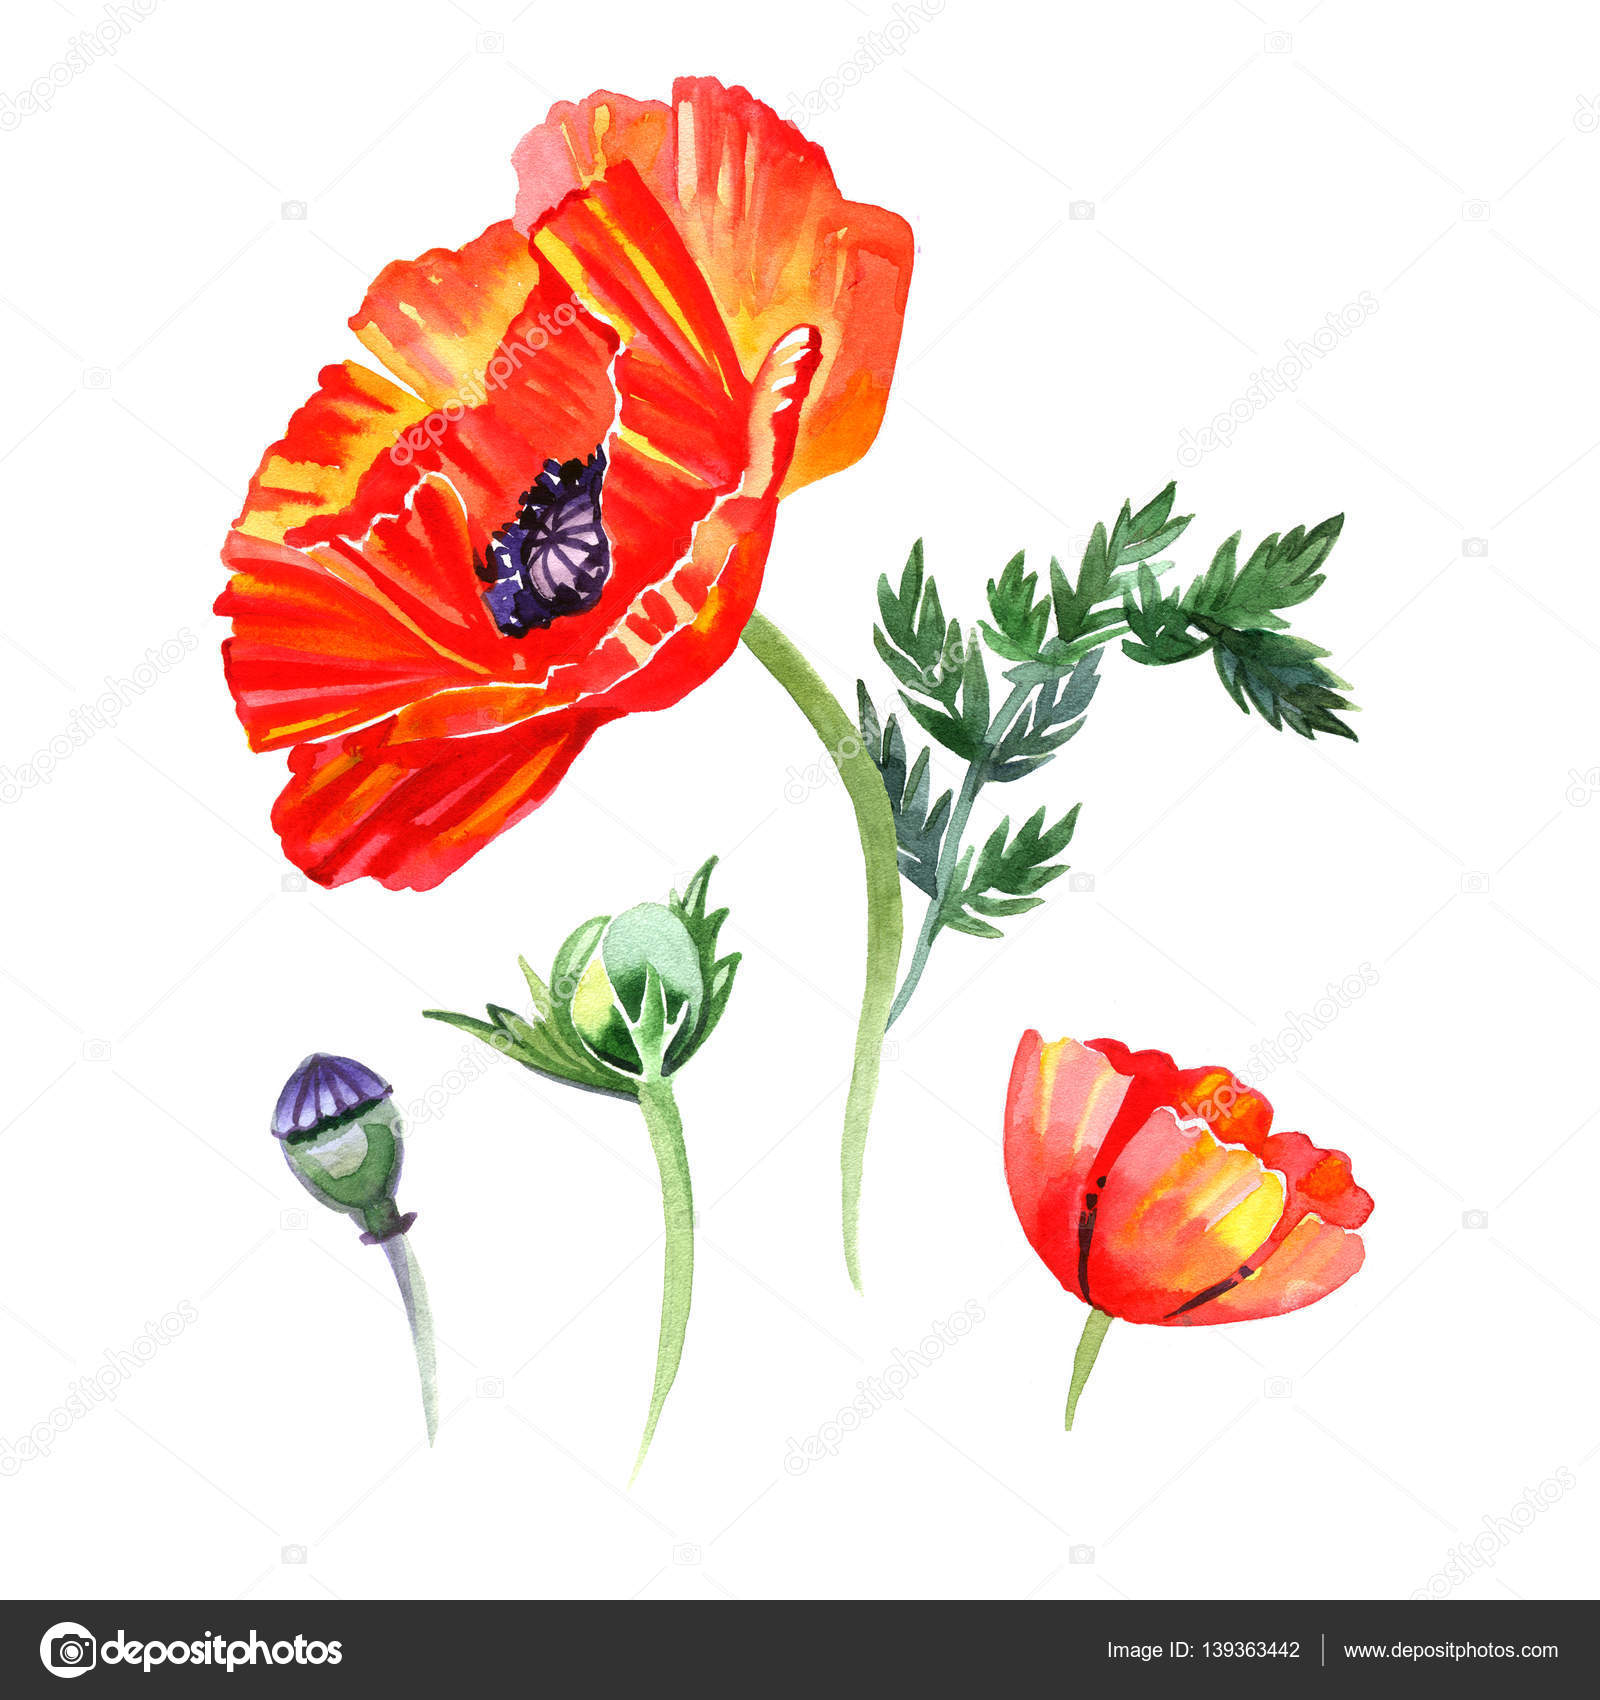 Drawn poppy detailed Buds and Hand of detailed